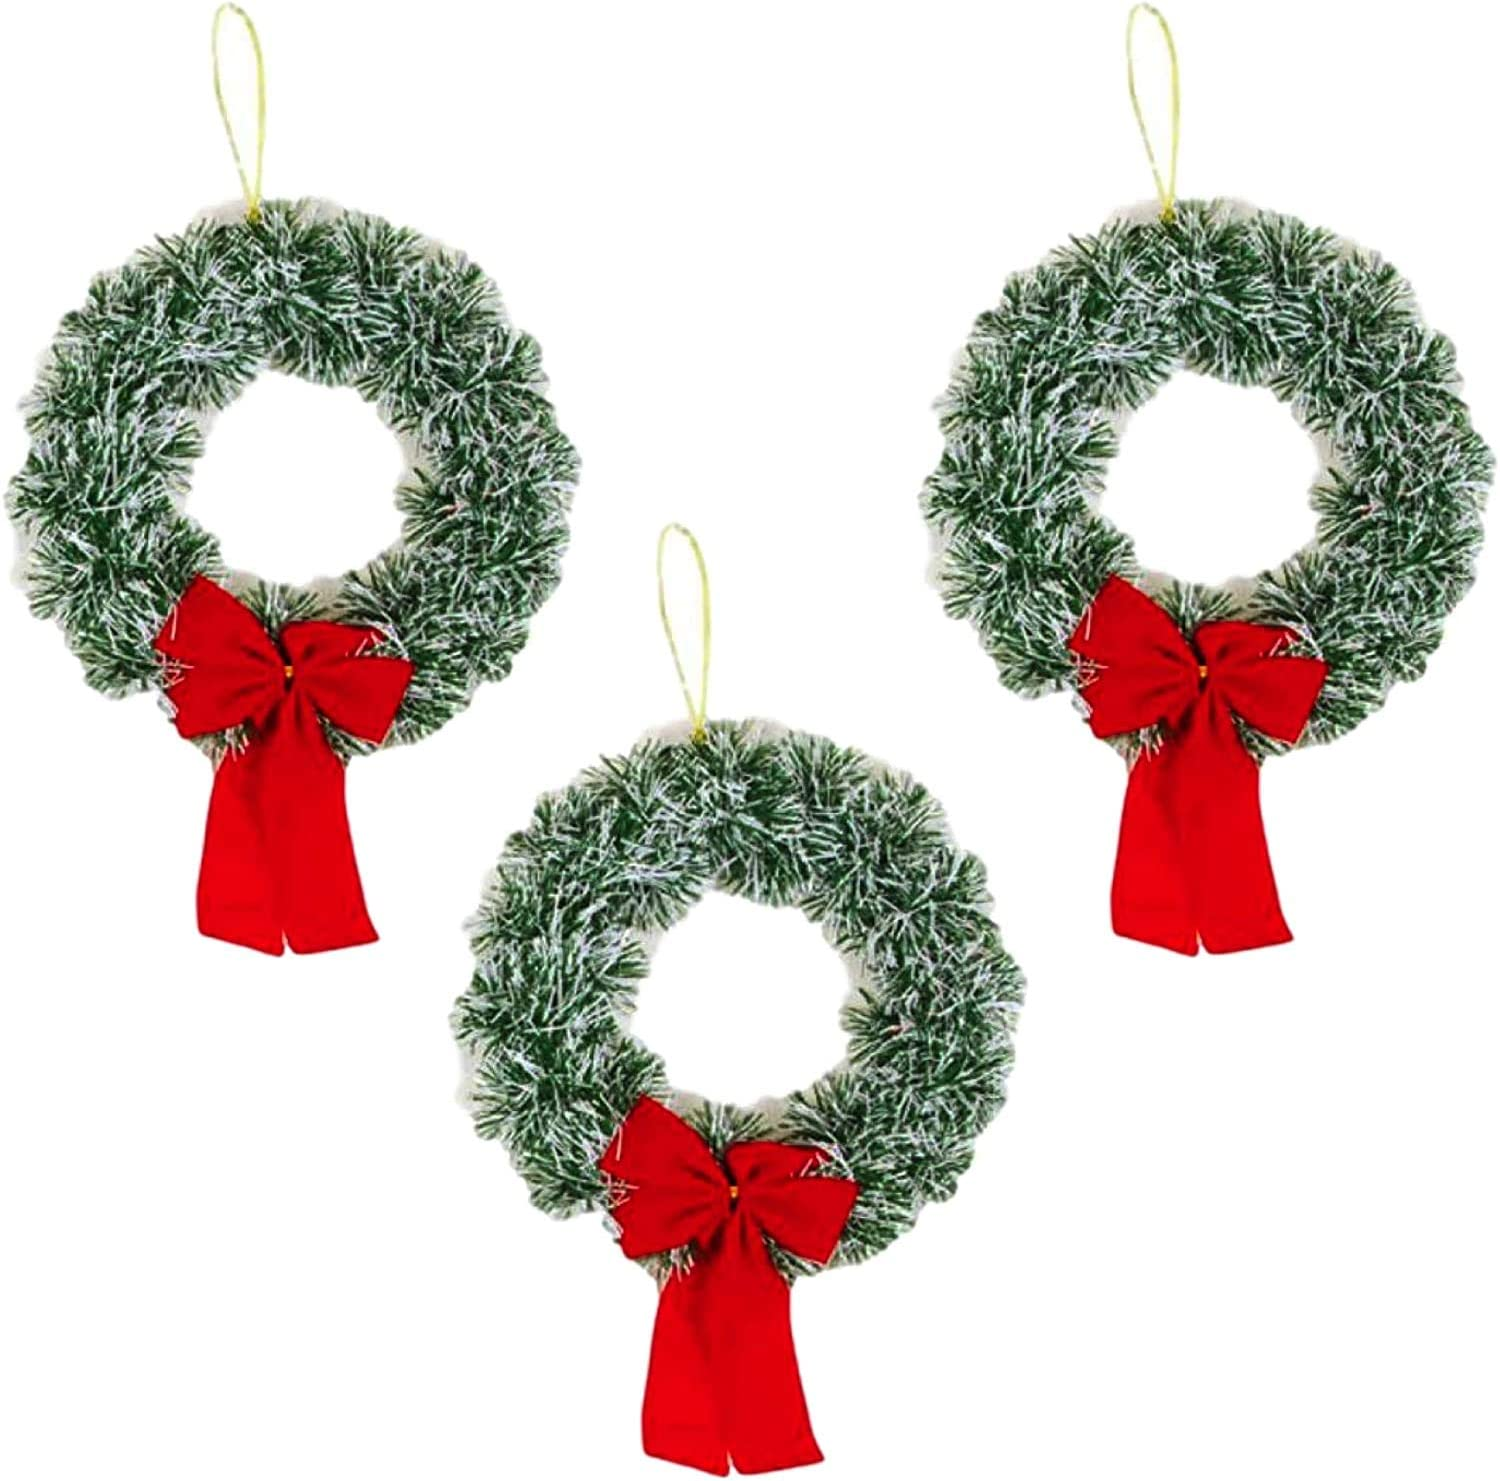 Plum Nellie Christmas Wreath Pine Snow Tips with Red Bow 9.5 Diameter Set of 3 Light Pine